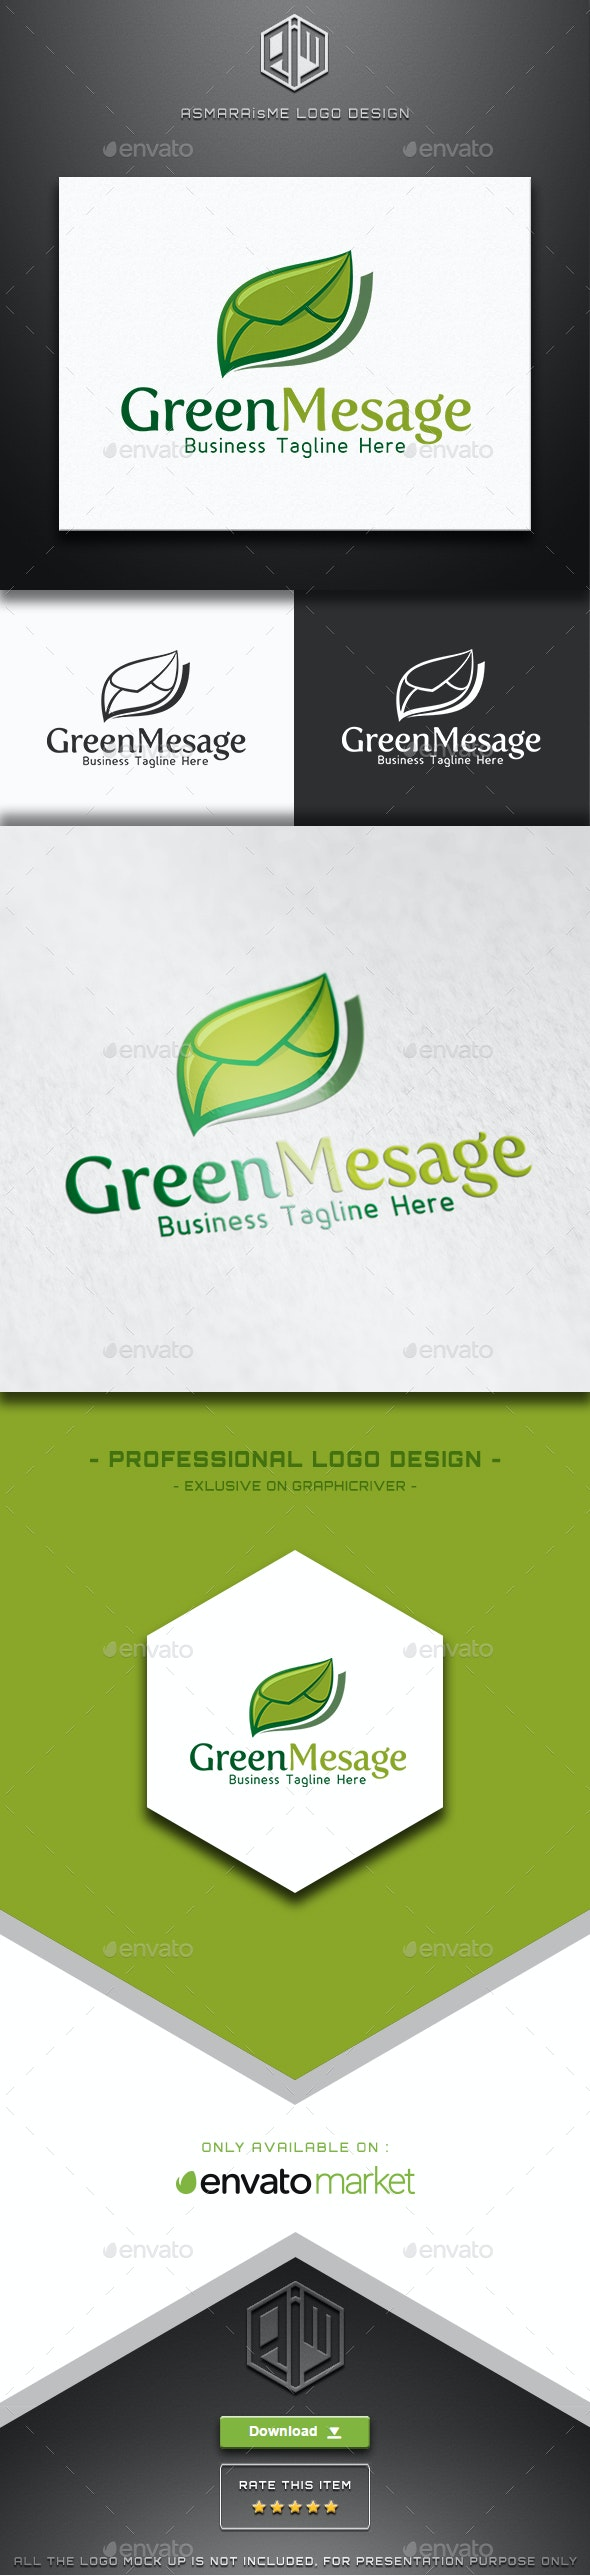 Green Mesage - Back to the Nature Logo - Nature Logo Templates